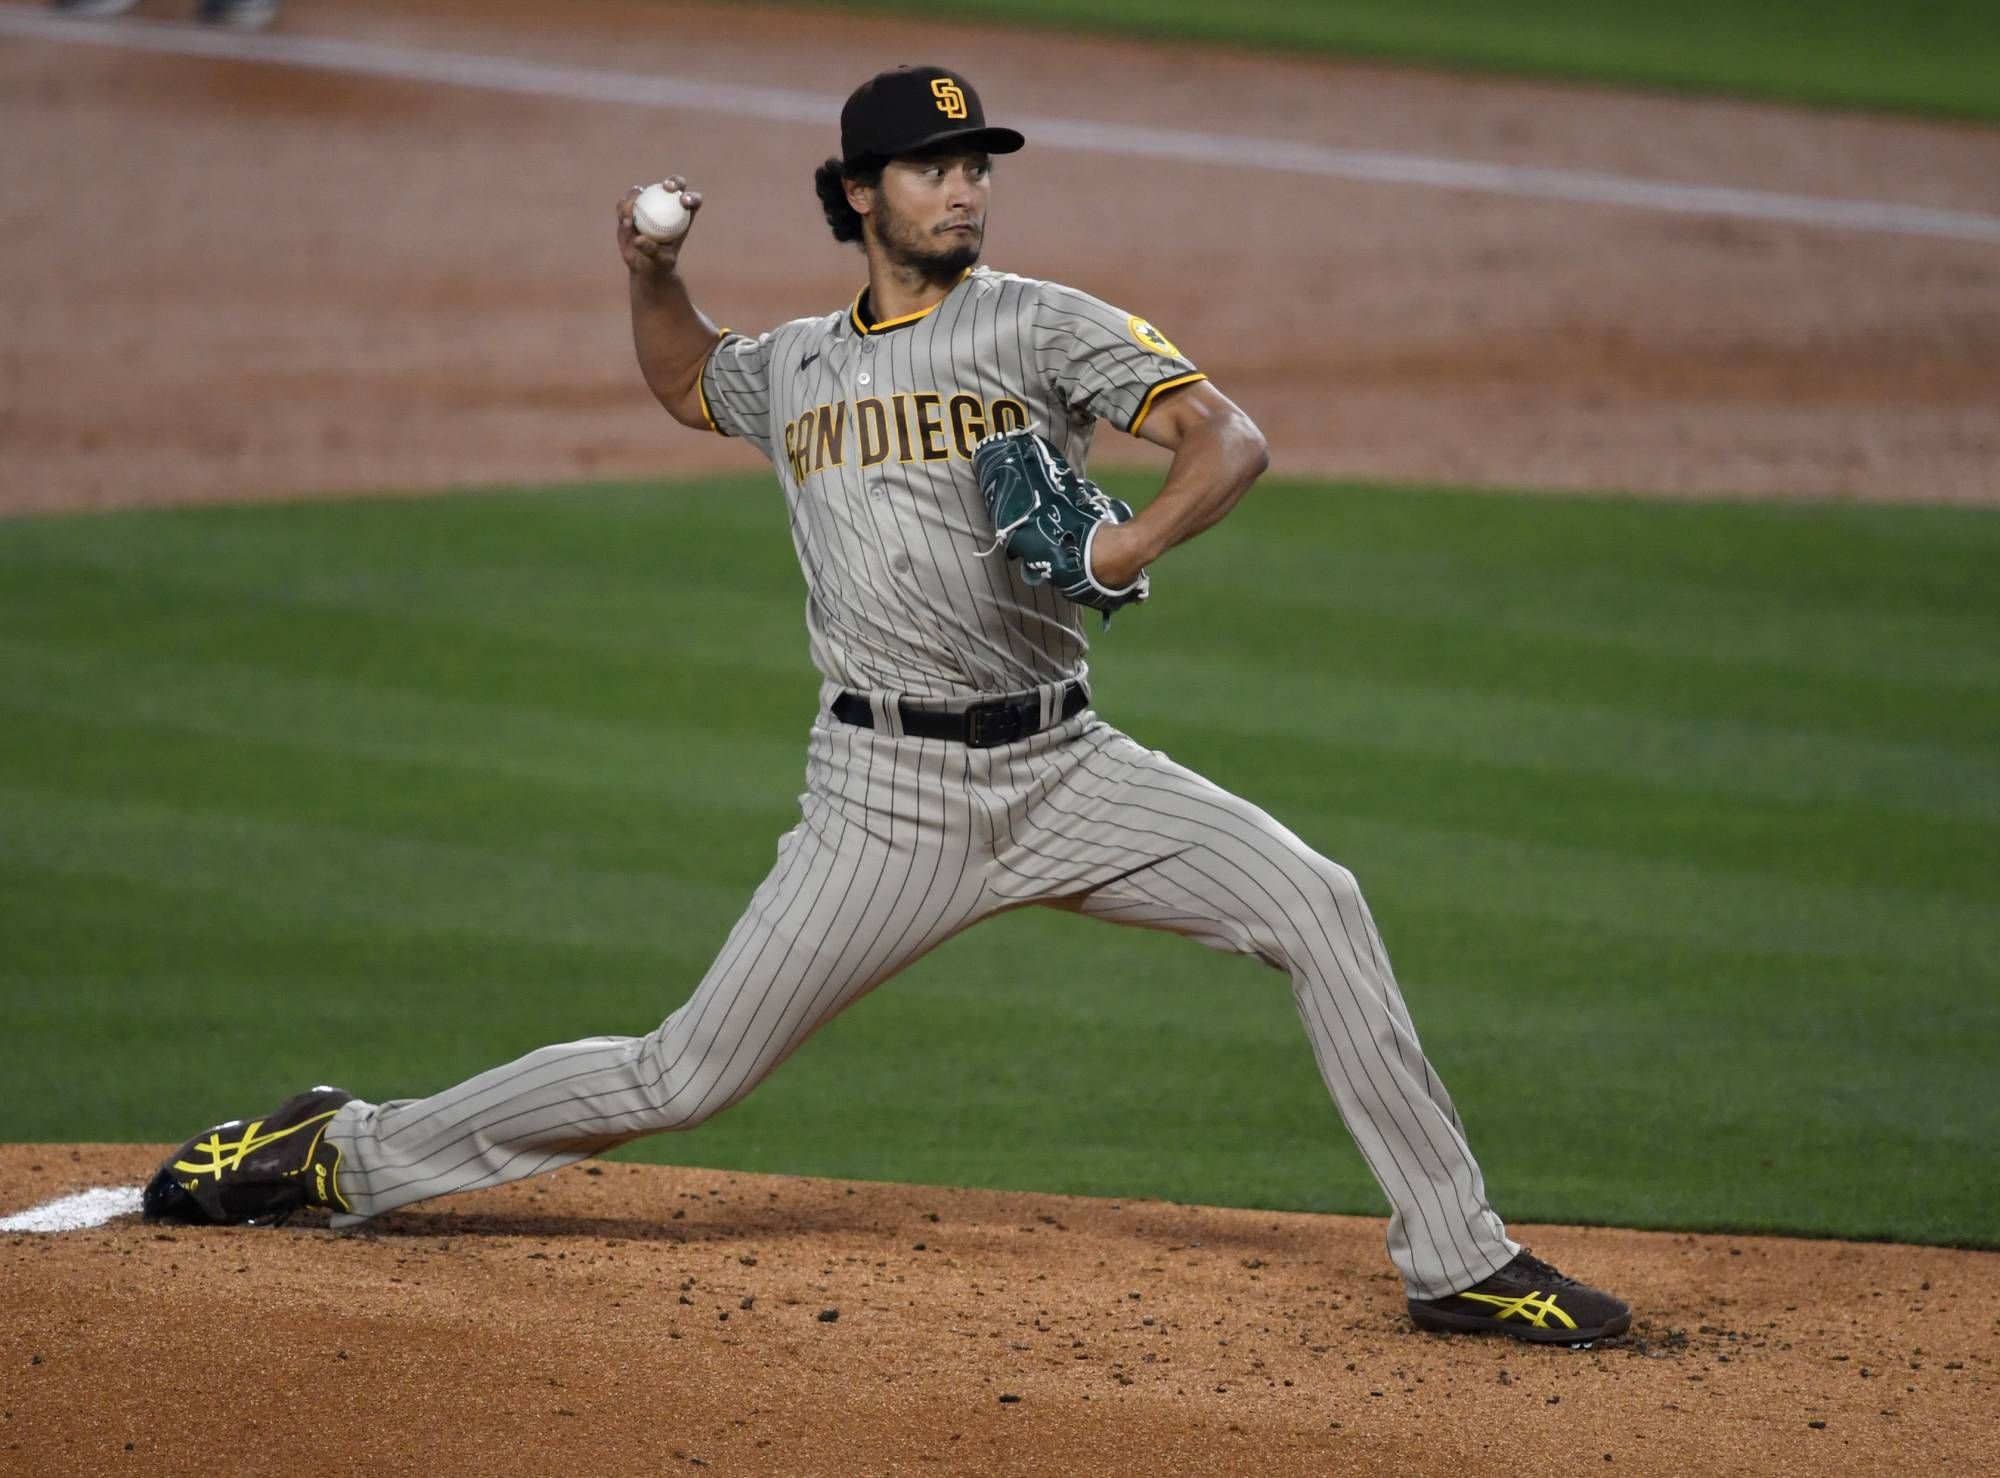 San Diego Padres starting pitcher Yu Darvish pitches in a game late last month against the Los Angeles Dodgers.  | USA TODAY SPORTS / VIA REUTERS